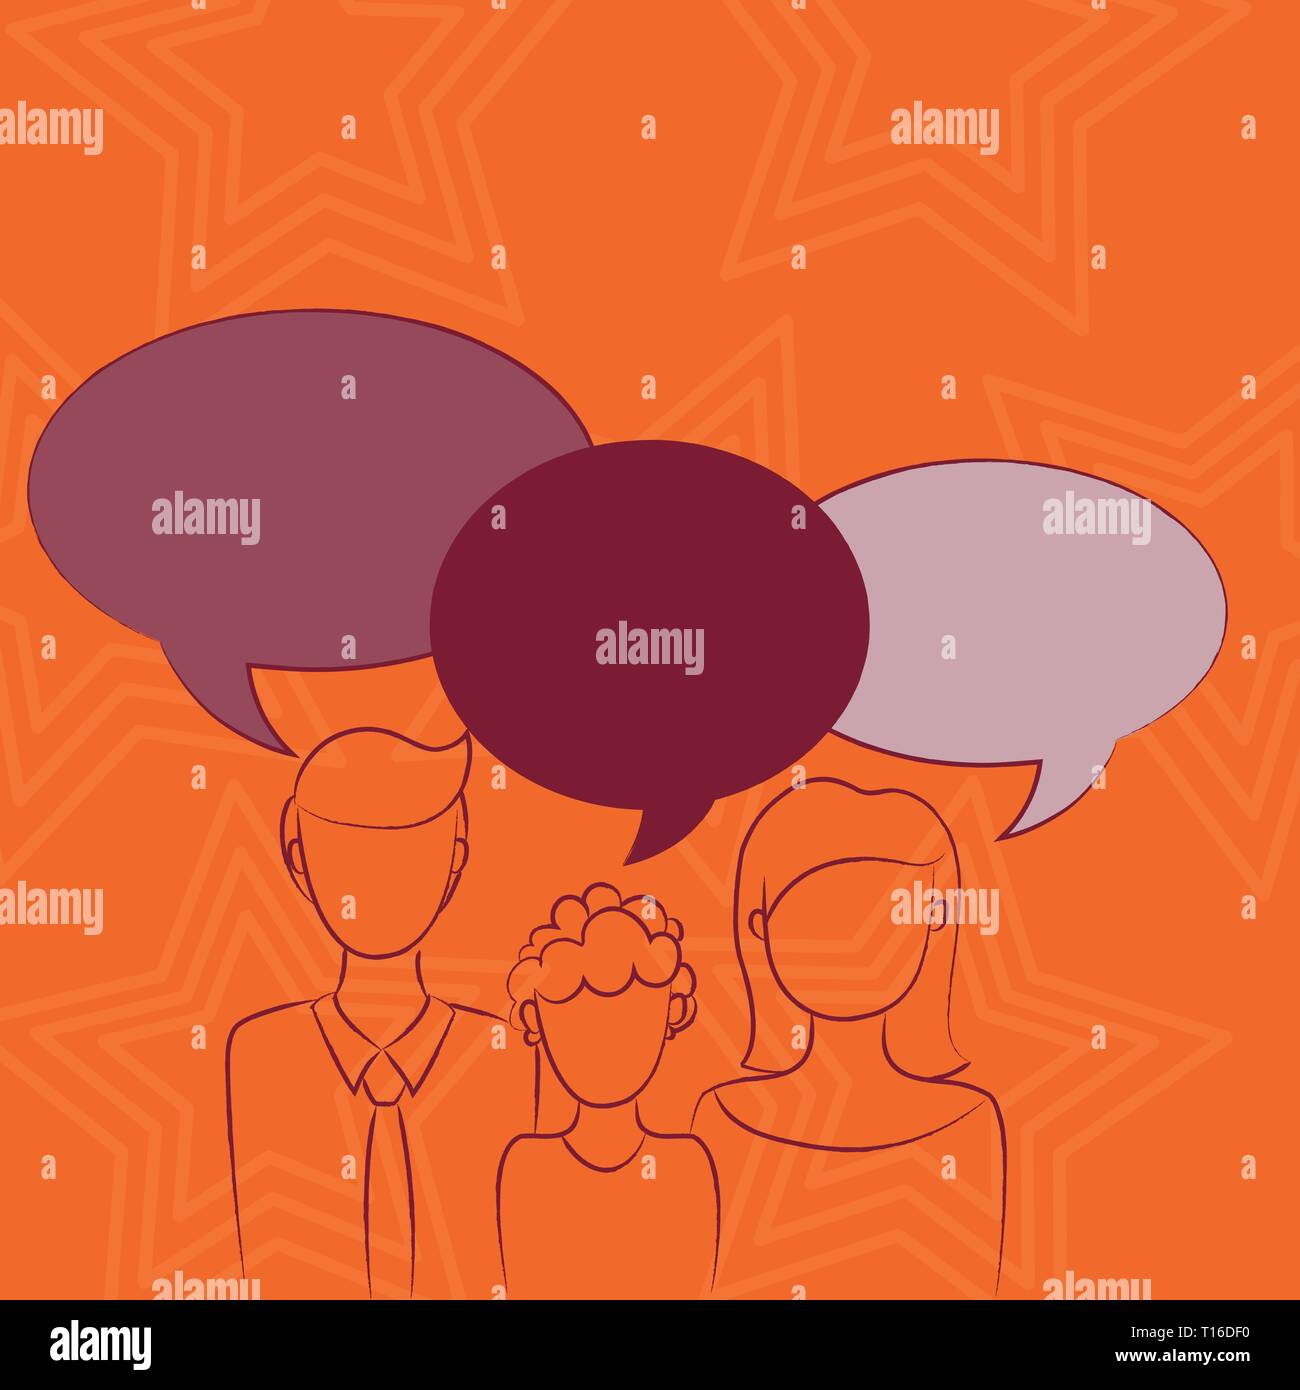 Family of One Child Between Father and Mother and Their Own Speech Bubble Design business concept Empty copy text for Web banners promotional material - Stock Vector